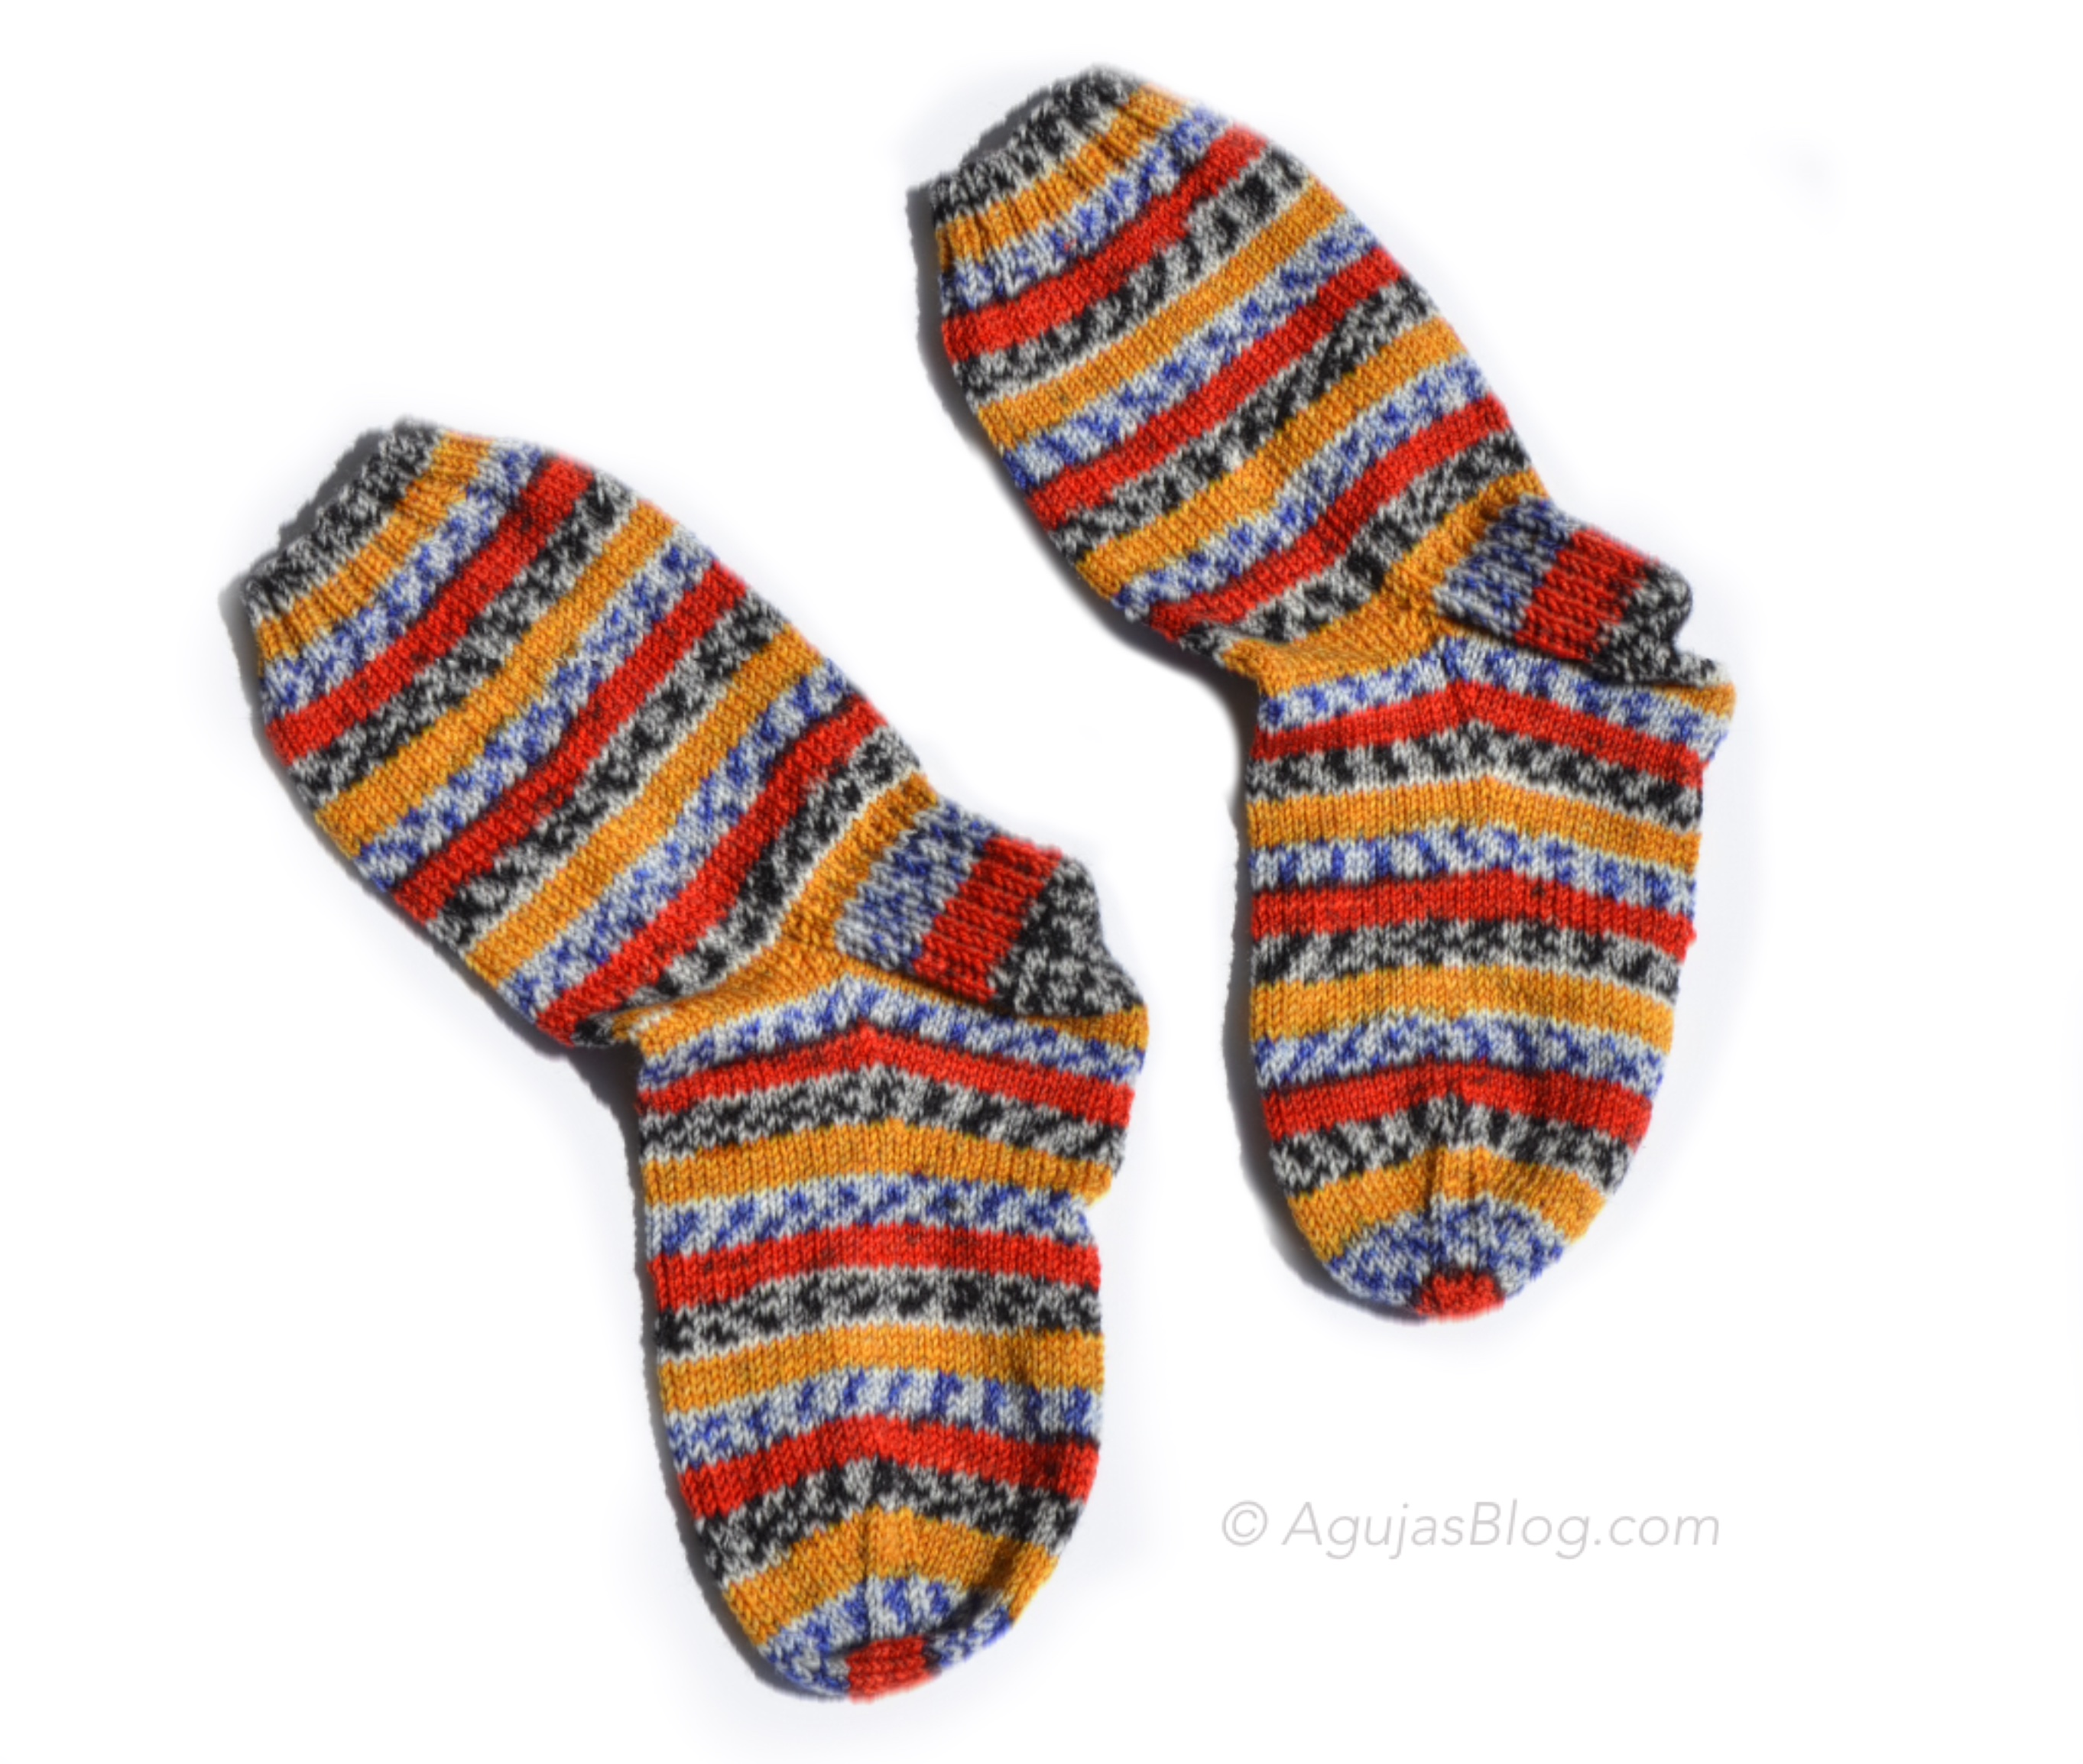 Crazy for Knitted Socks – Agujas